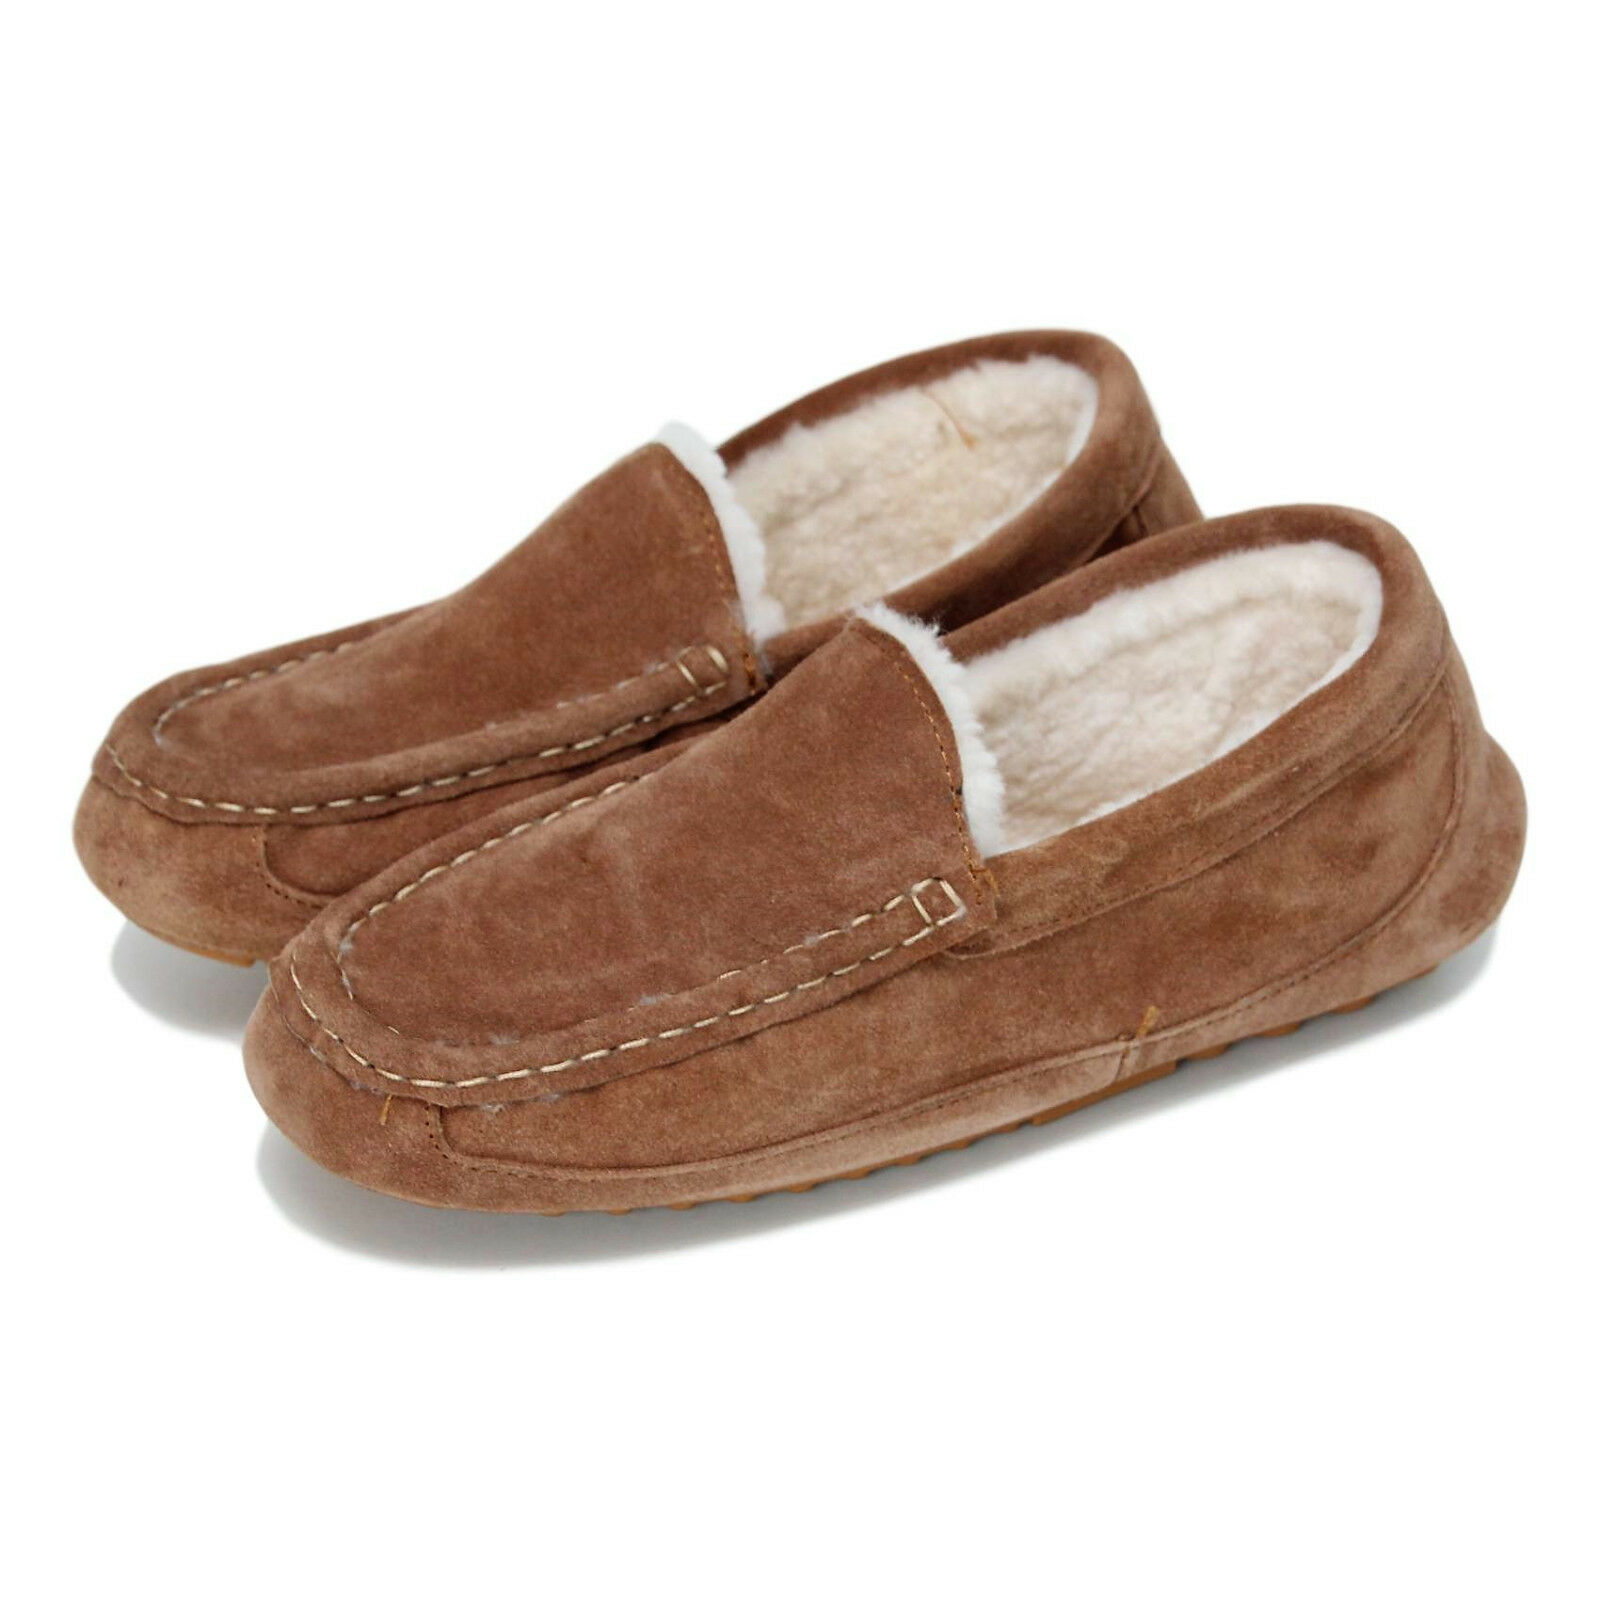 Deluxe Men's Sheepskin Moccasin Slippers with Hard Sole & FREE RETURNS